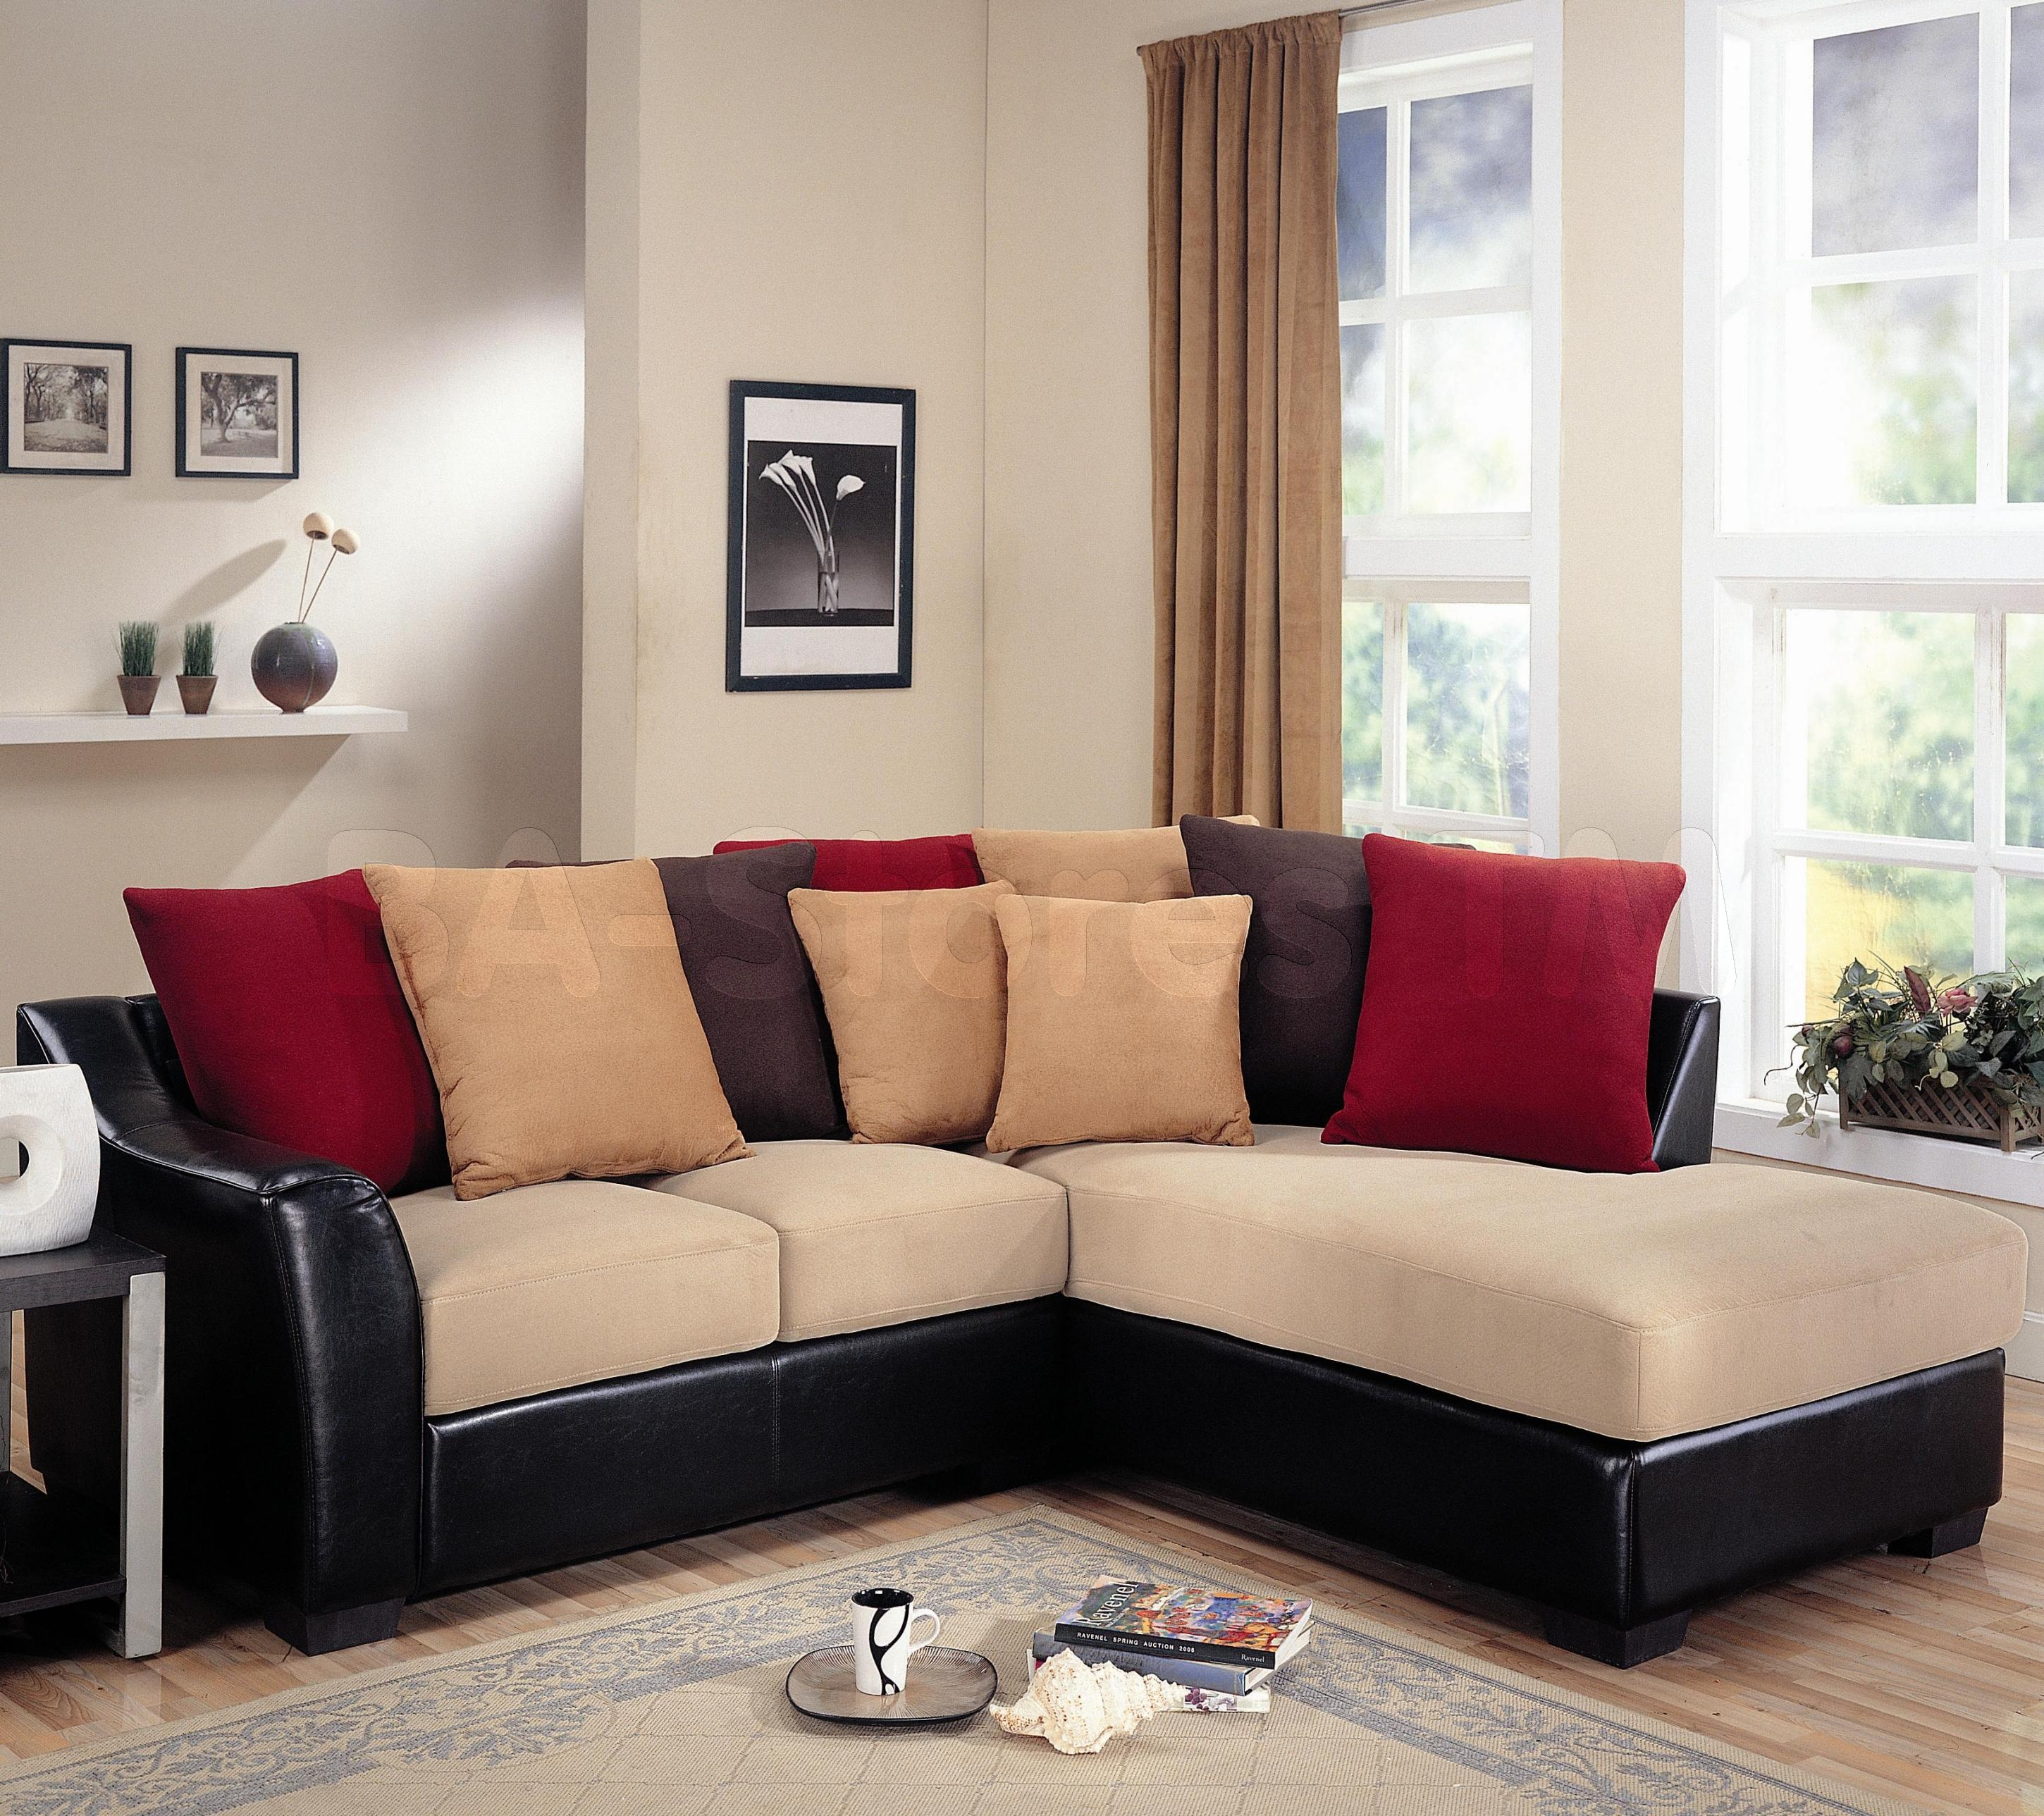 Furniture 63 Cheap Living Room Sets Wooden Floor And Wall And For Floor Couch Cushions (Image 13 of 15)